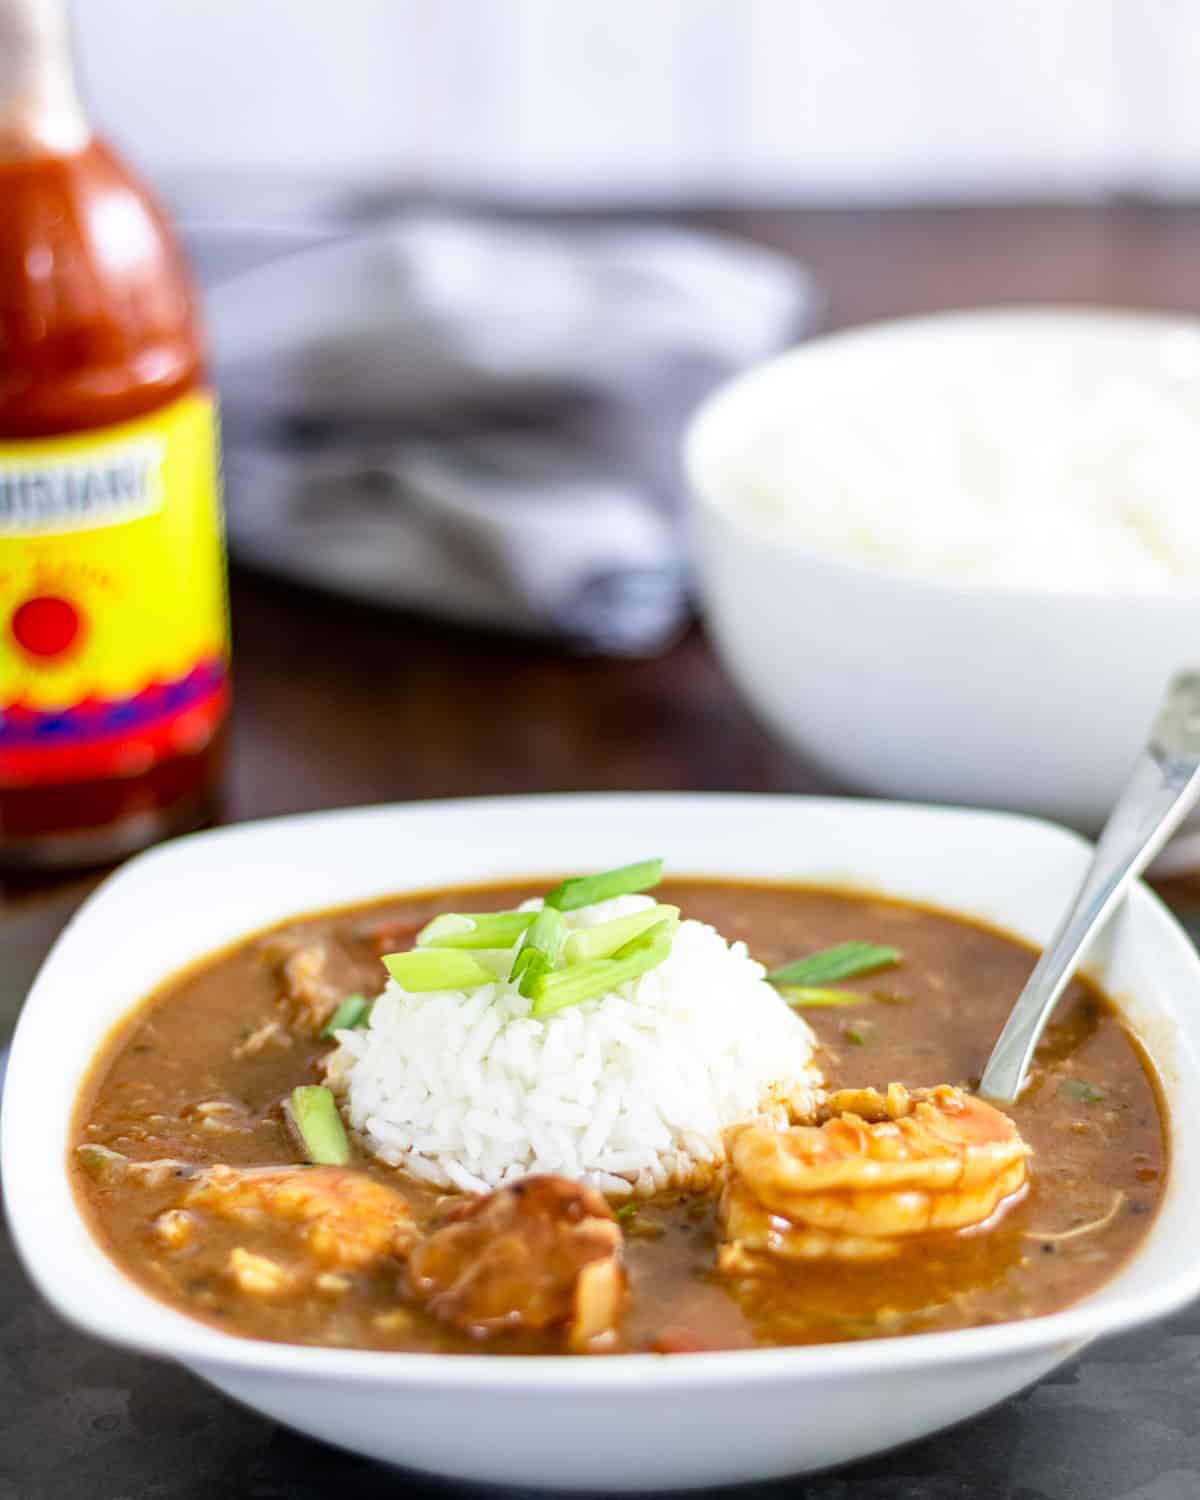 Bowl of shrimp and sausage gumbo with rice in the middle. Louisiana hot sauce and bowl of rice behind.